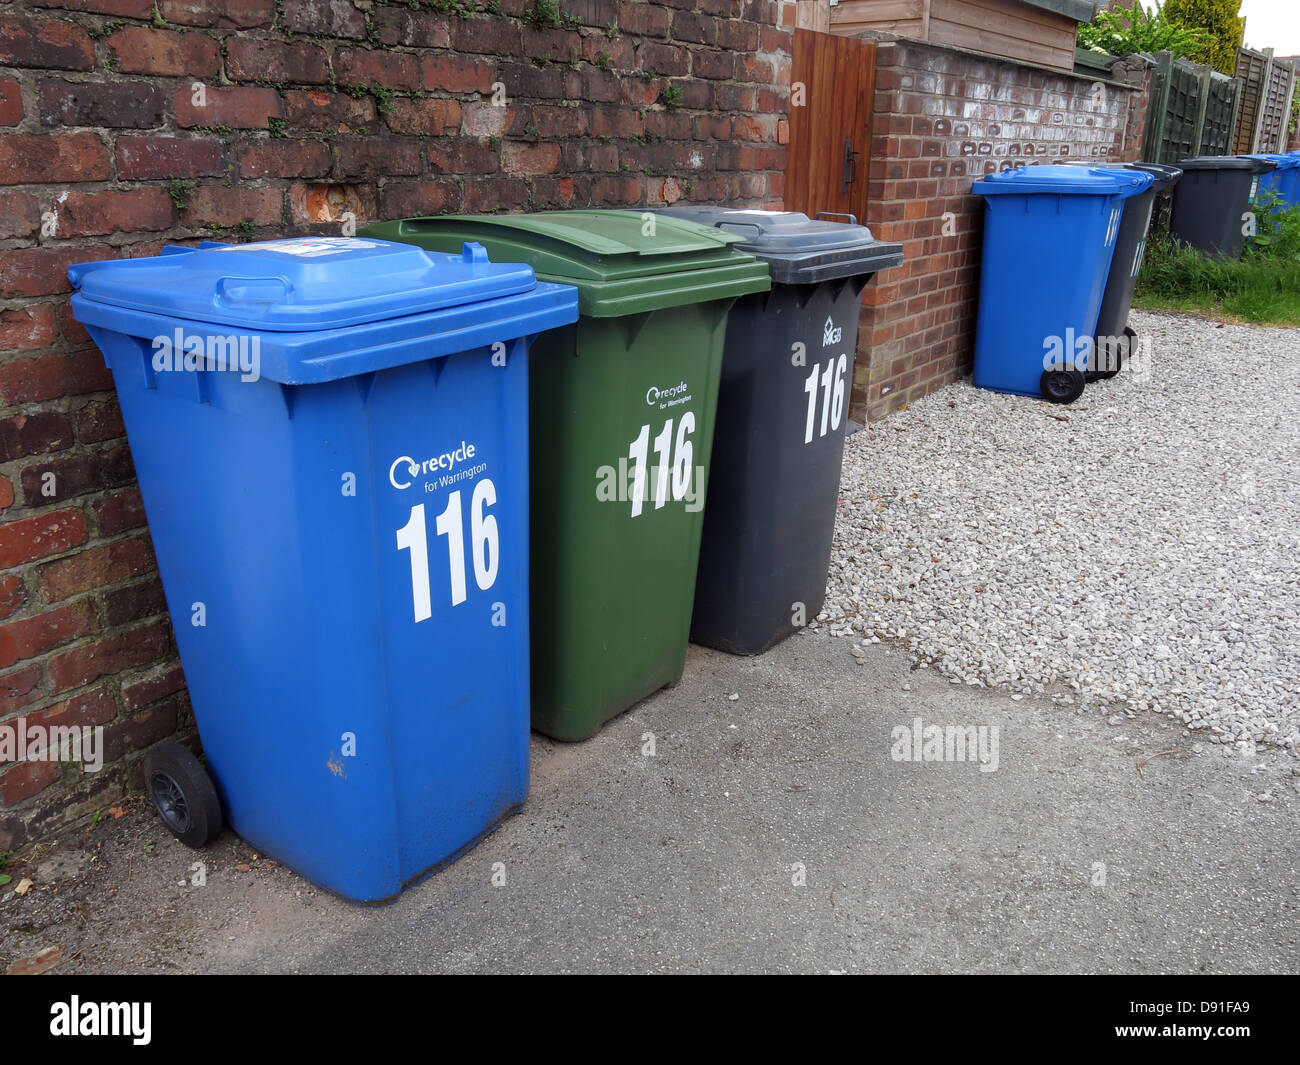 The,many,wheelie,bins,now,required,for,domestic,households,in,England,UK Blue for recycling,Green Garden Waste,Grey,remainder,116,gotonysmith,household,problems,where,to,store,council,local,authority,unitary,WBC,Warrington,Borough,city,town,rubbish,bin,binman,man,trash,in,europe,disposing,disposal,of,flipbin,flip,bins,container,mess,weekly,fortnightly,collection,collections,weigh,weighing,tax,opening,lid,private,home,homes,can,English,dumpster,dumpsters,German,patent,held,by,Schneider,120,to,360,litres,wheels,on,bottom,handle,local,Councils,waste,management,policies,Councils,dustcart,garbage,bags,kerb,side,kerbside,gotonysmith,Buy Pictures of,Buy Images Of